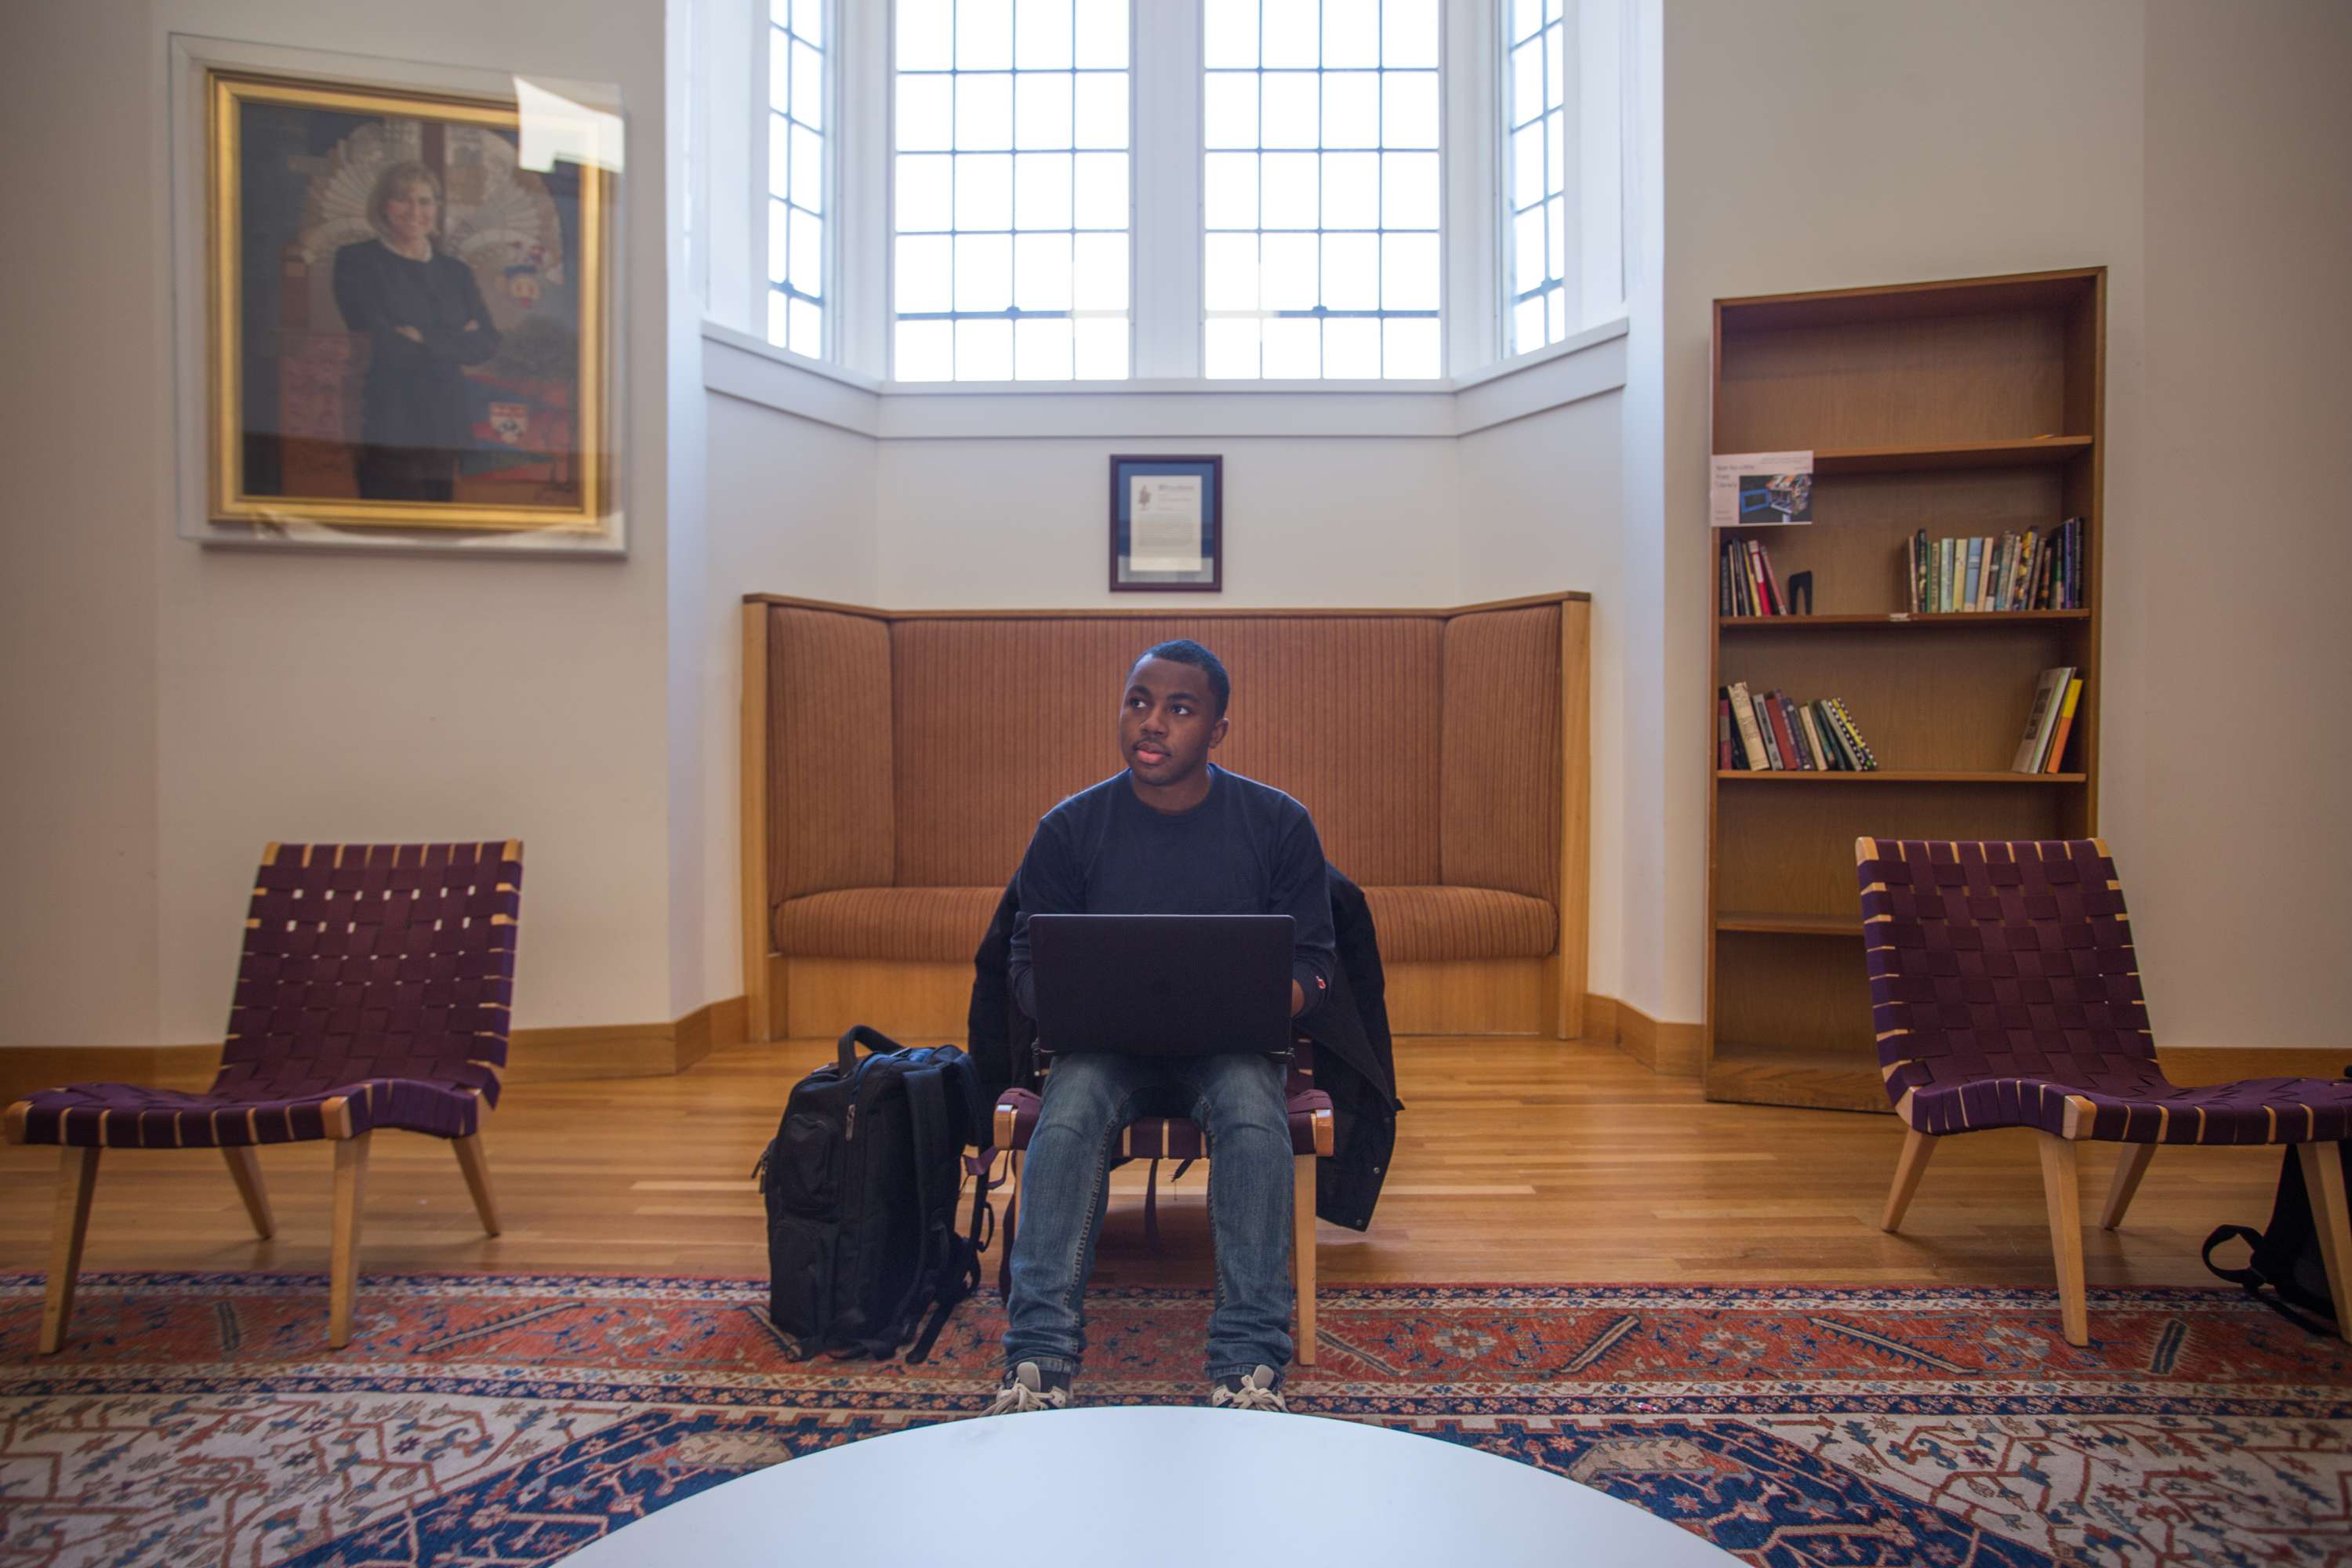 Sonari sitting on a chair in a large room